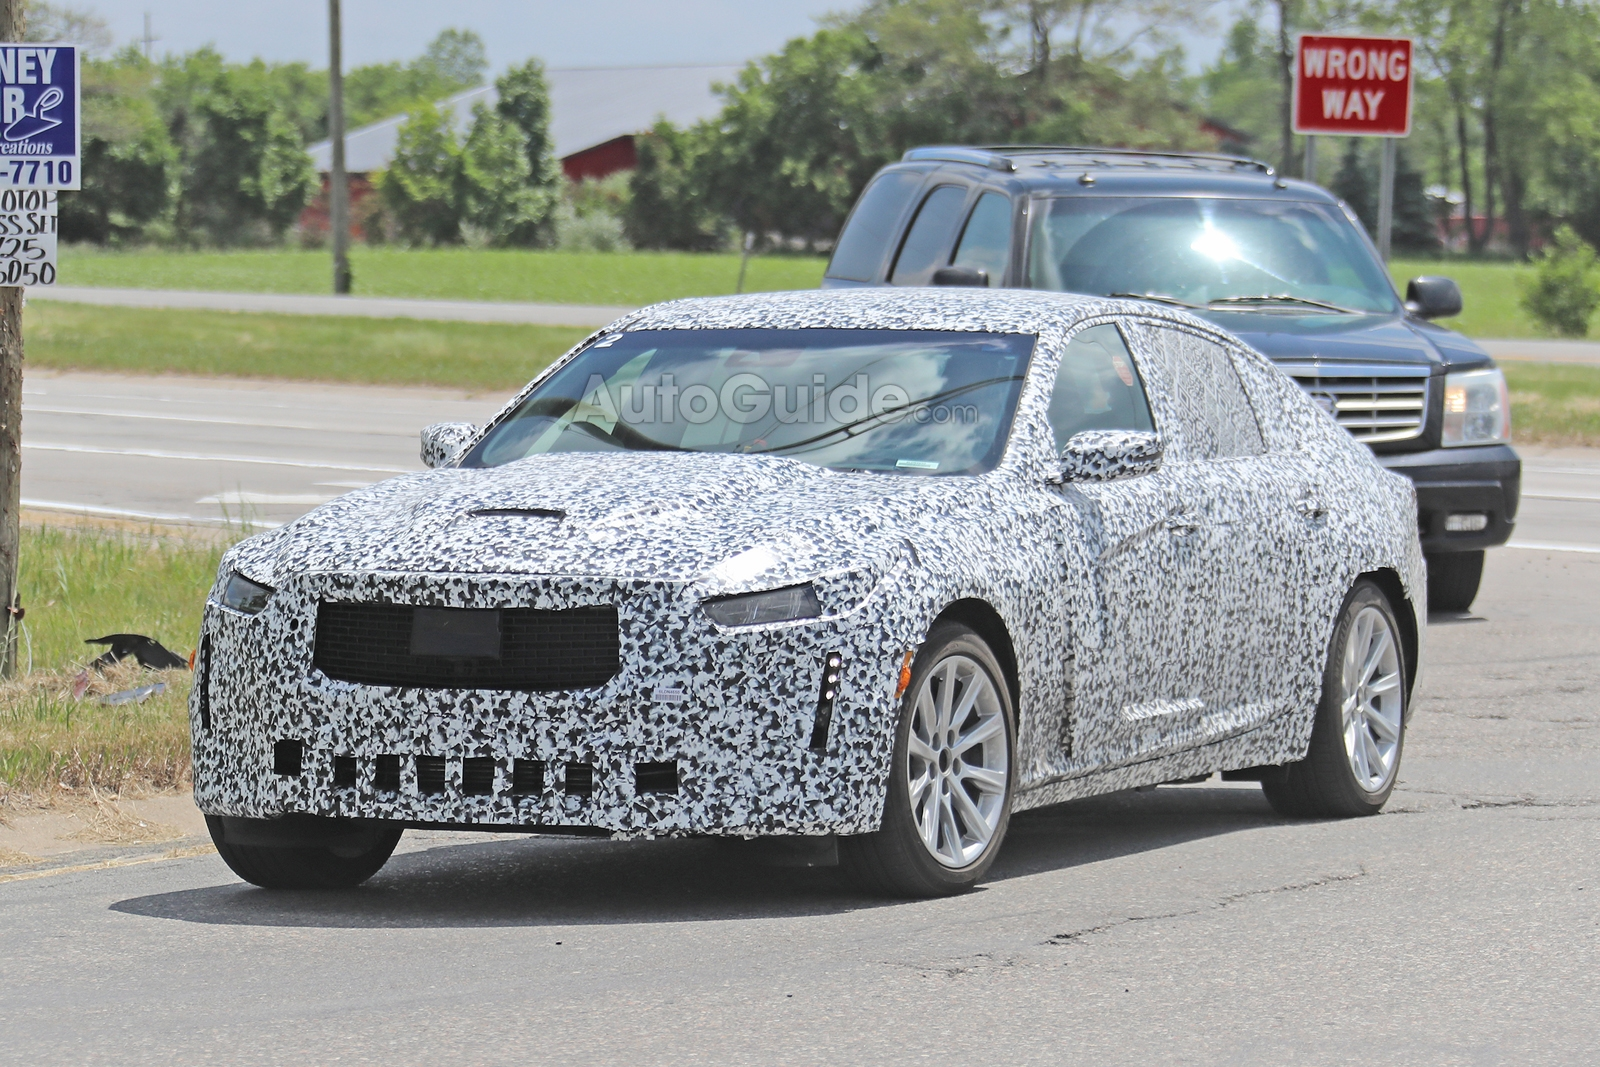 Cadillac-CT5-Spied-5